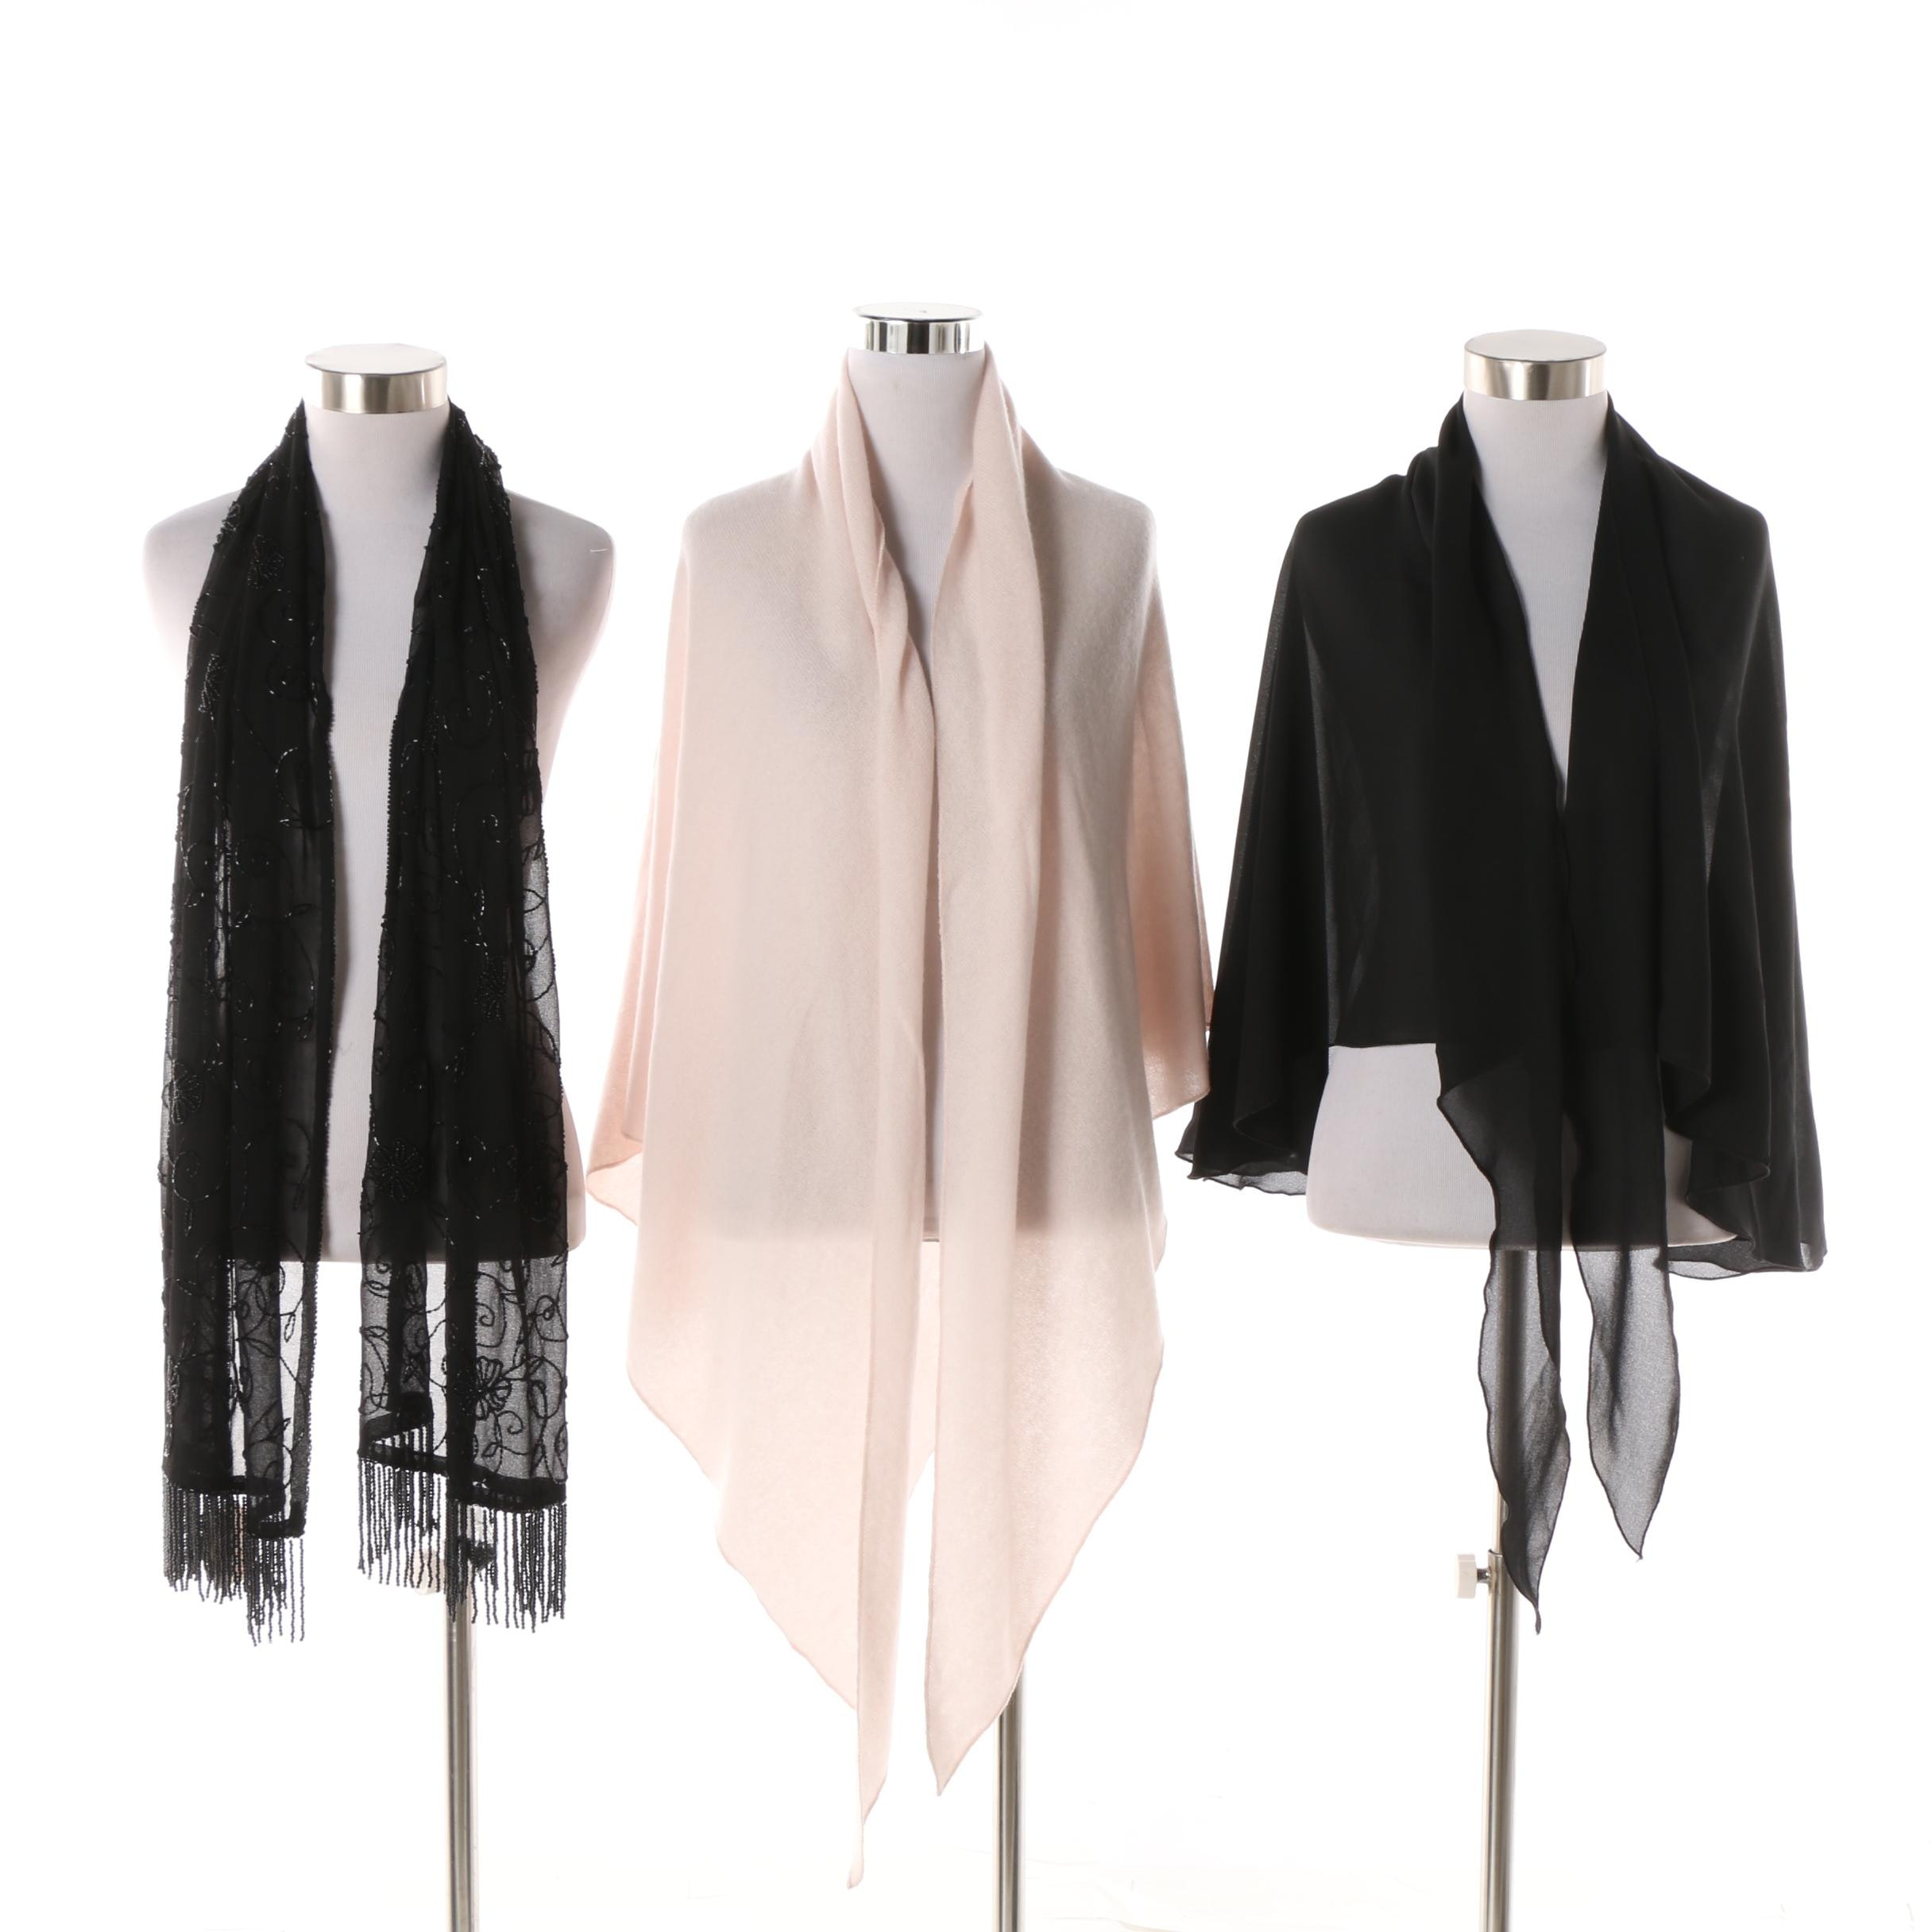 Repeat, K & K, and BodyRap Scarves